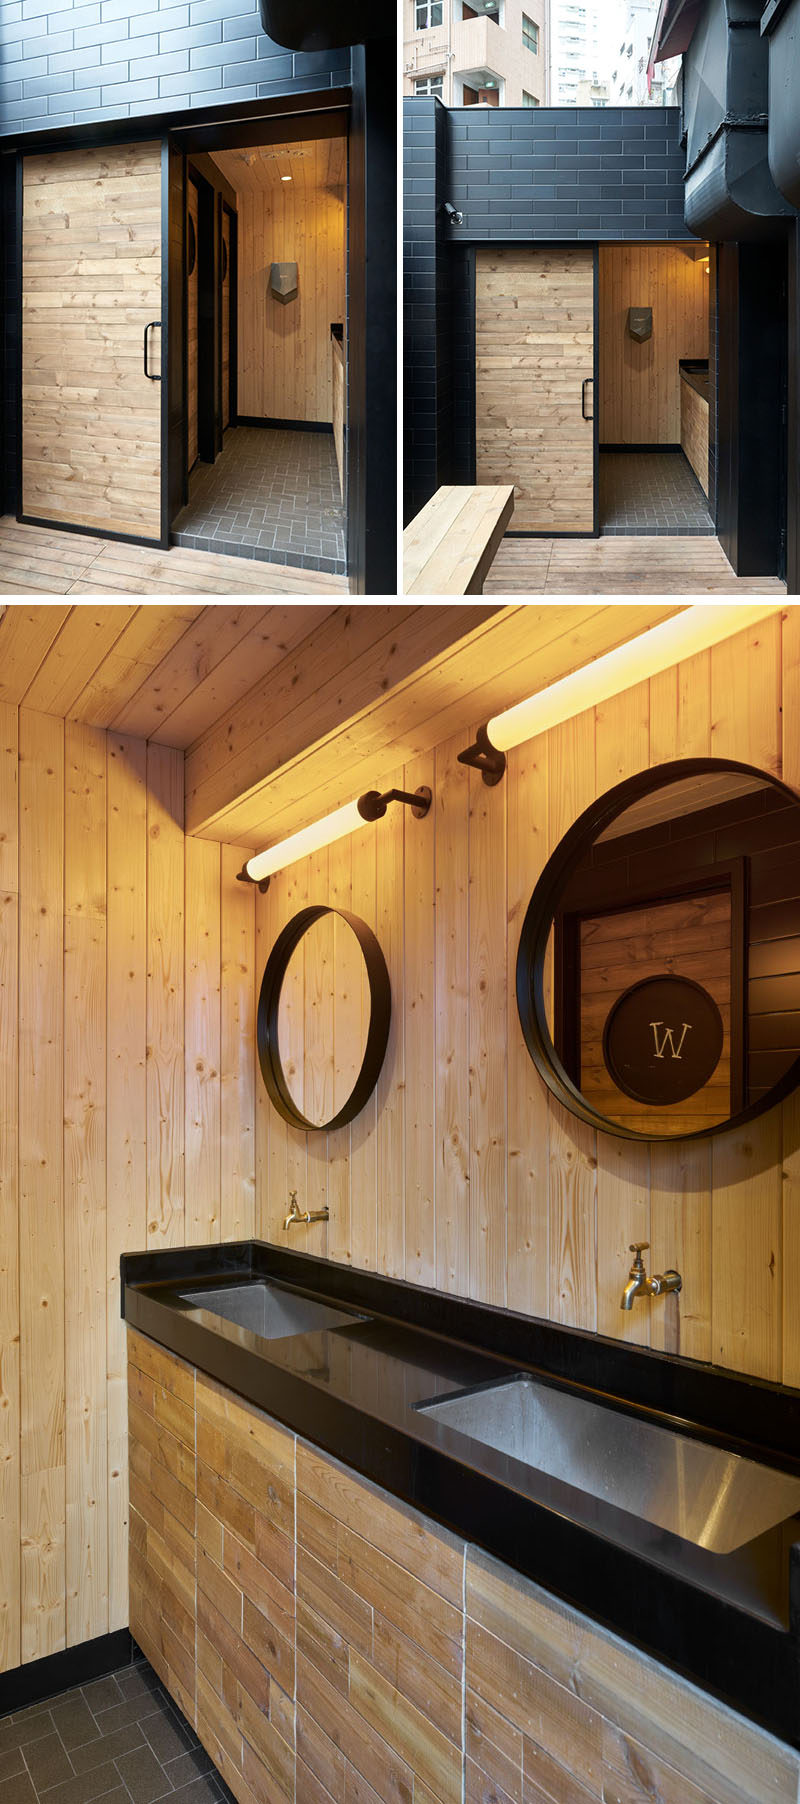 This modern coffee shop has a set of minimally decorated washrooms that stand out on a black wall with wood sliding doors. The interior is full of light wood, and the vanity features a black countertop with undermount sinks, and hanging above are two black framed circular mirrors.